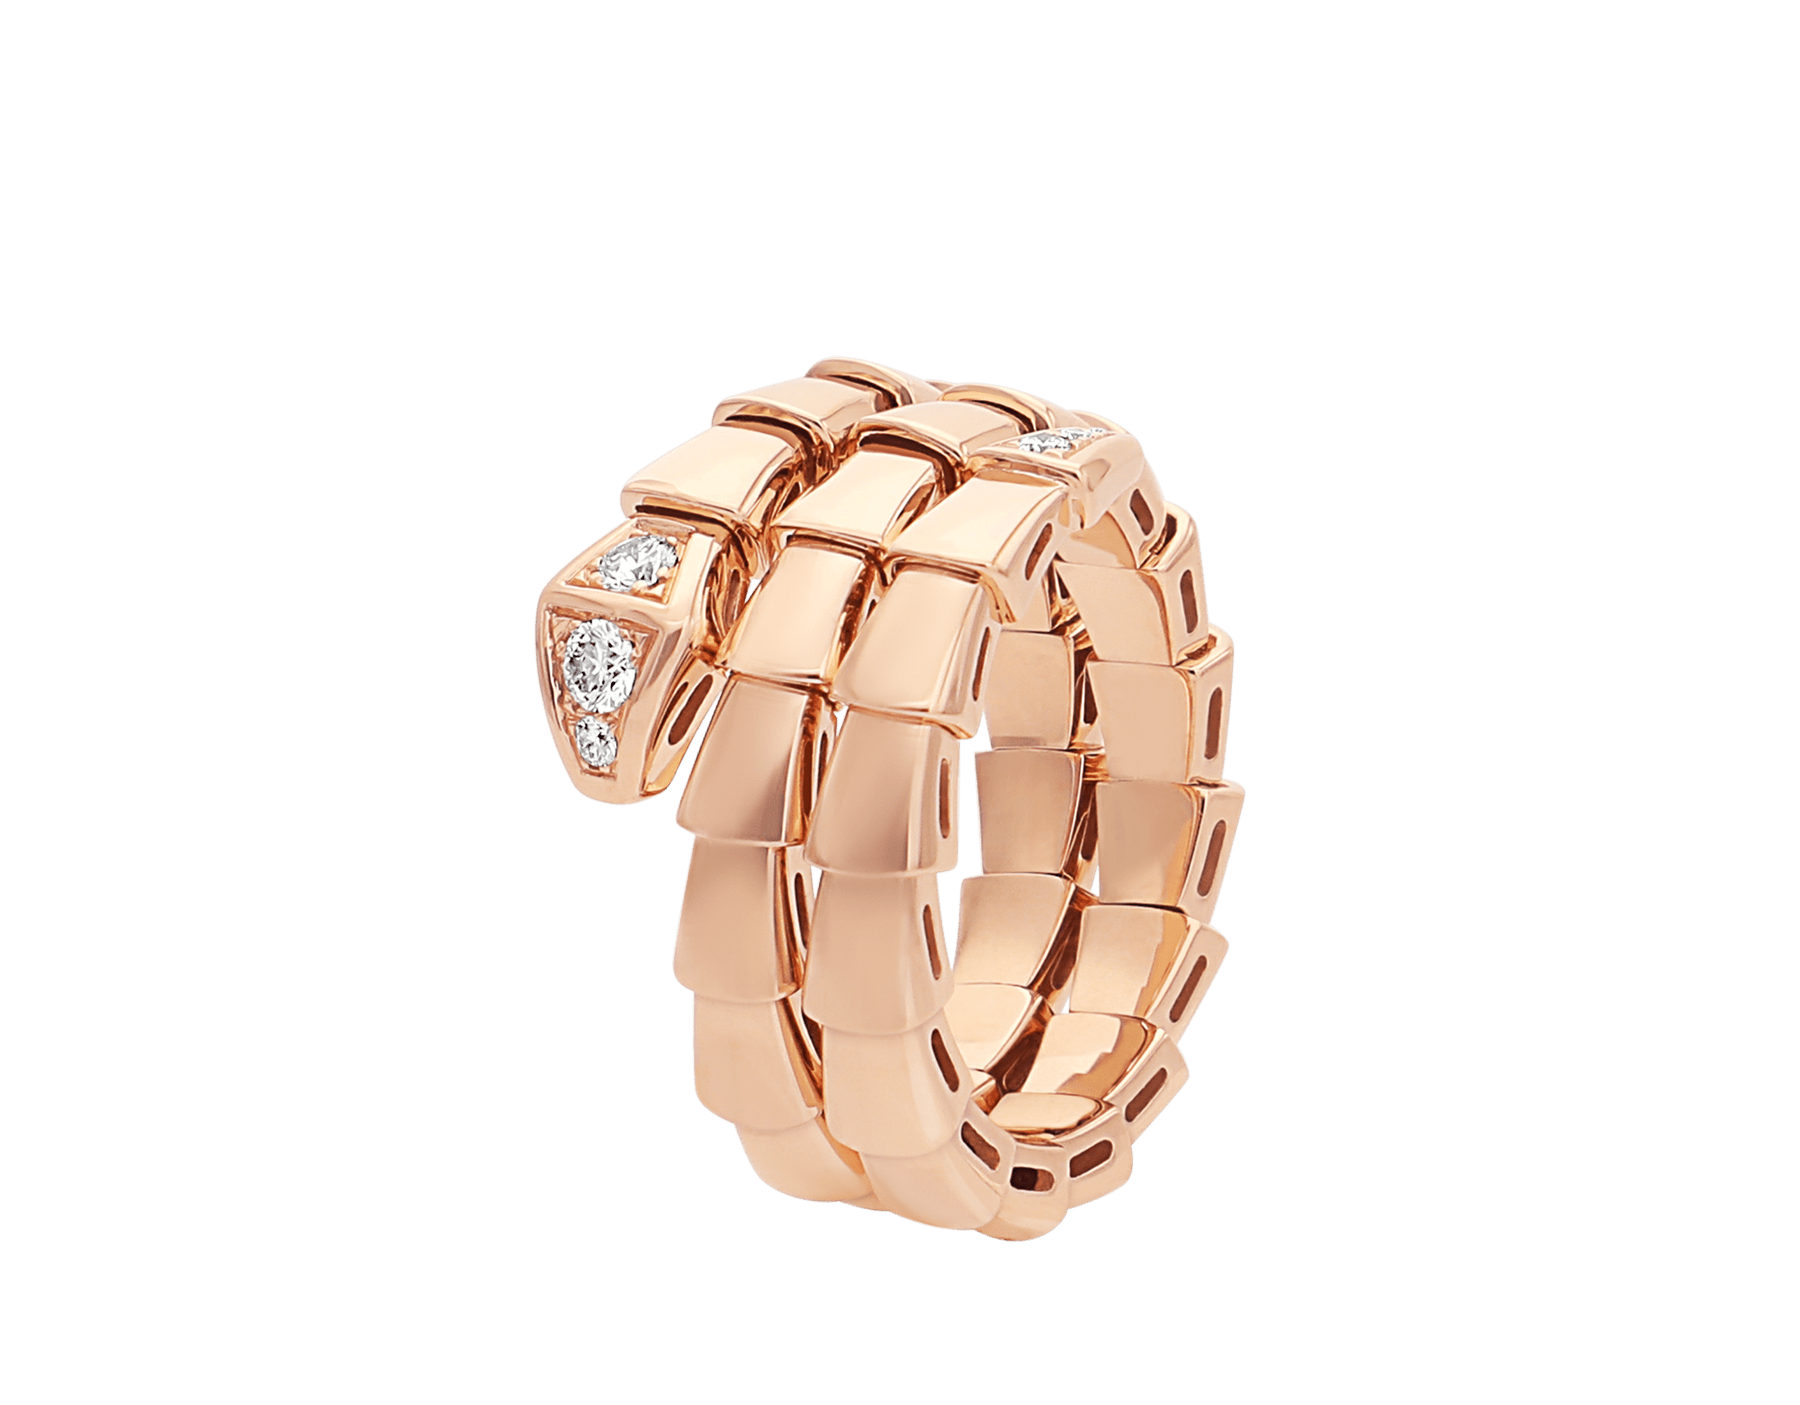 Bague deux tours Serpenti Viper en or rose 18 K avec semi-pavé diamants AN858824 image 1